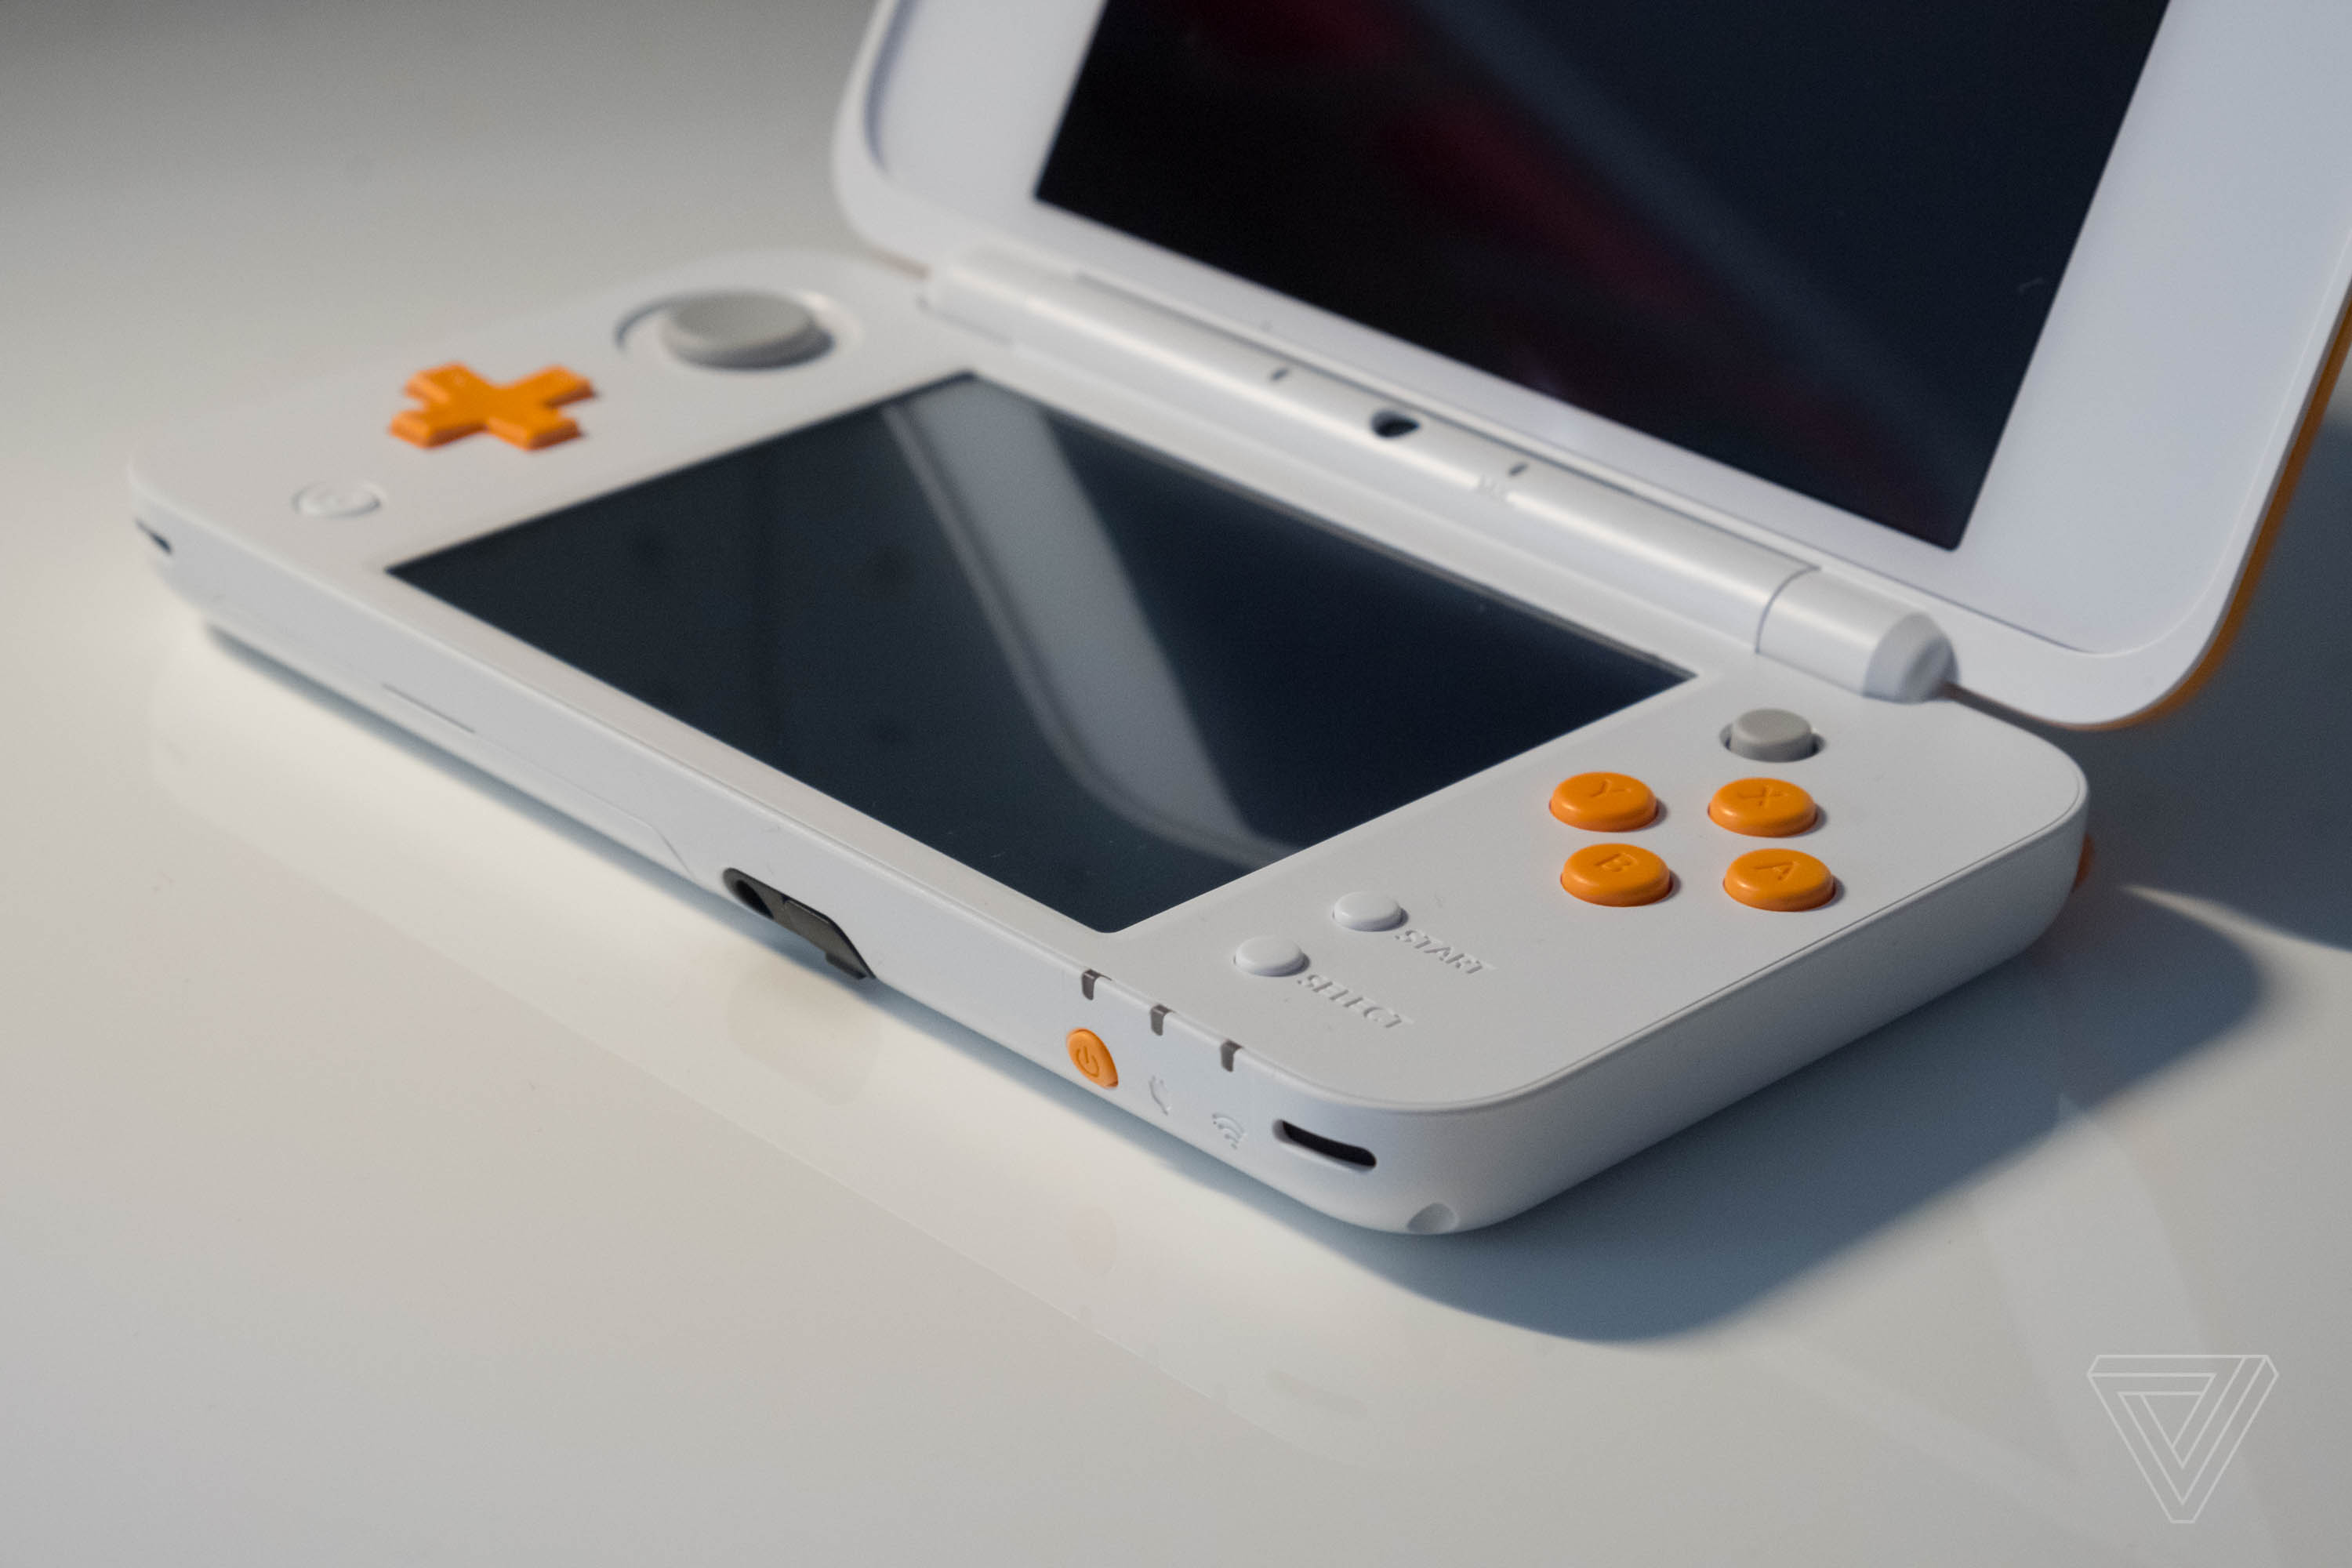 Nintendo says the Switch Lite isn't going to replace the 3DS